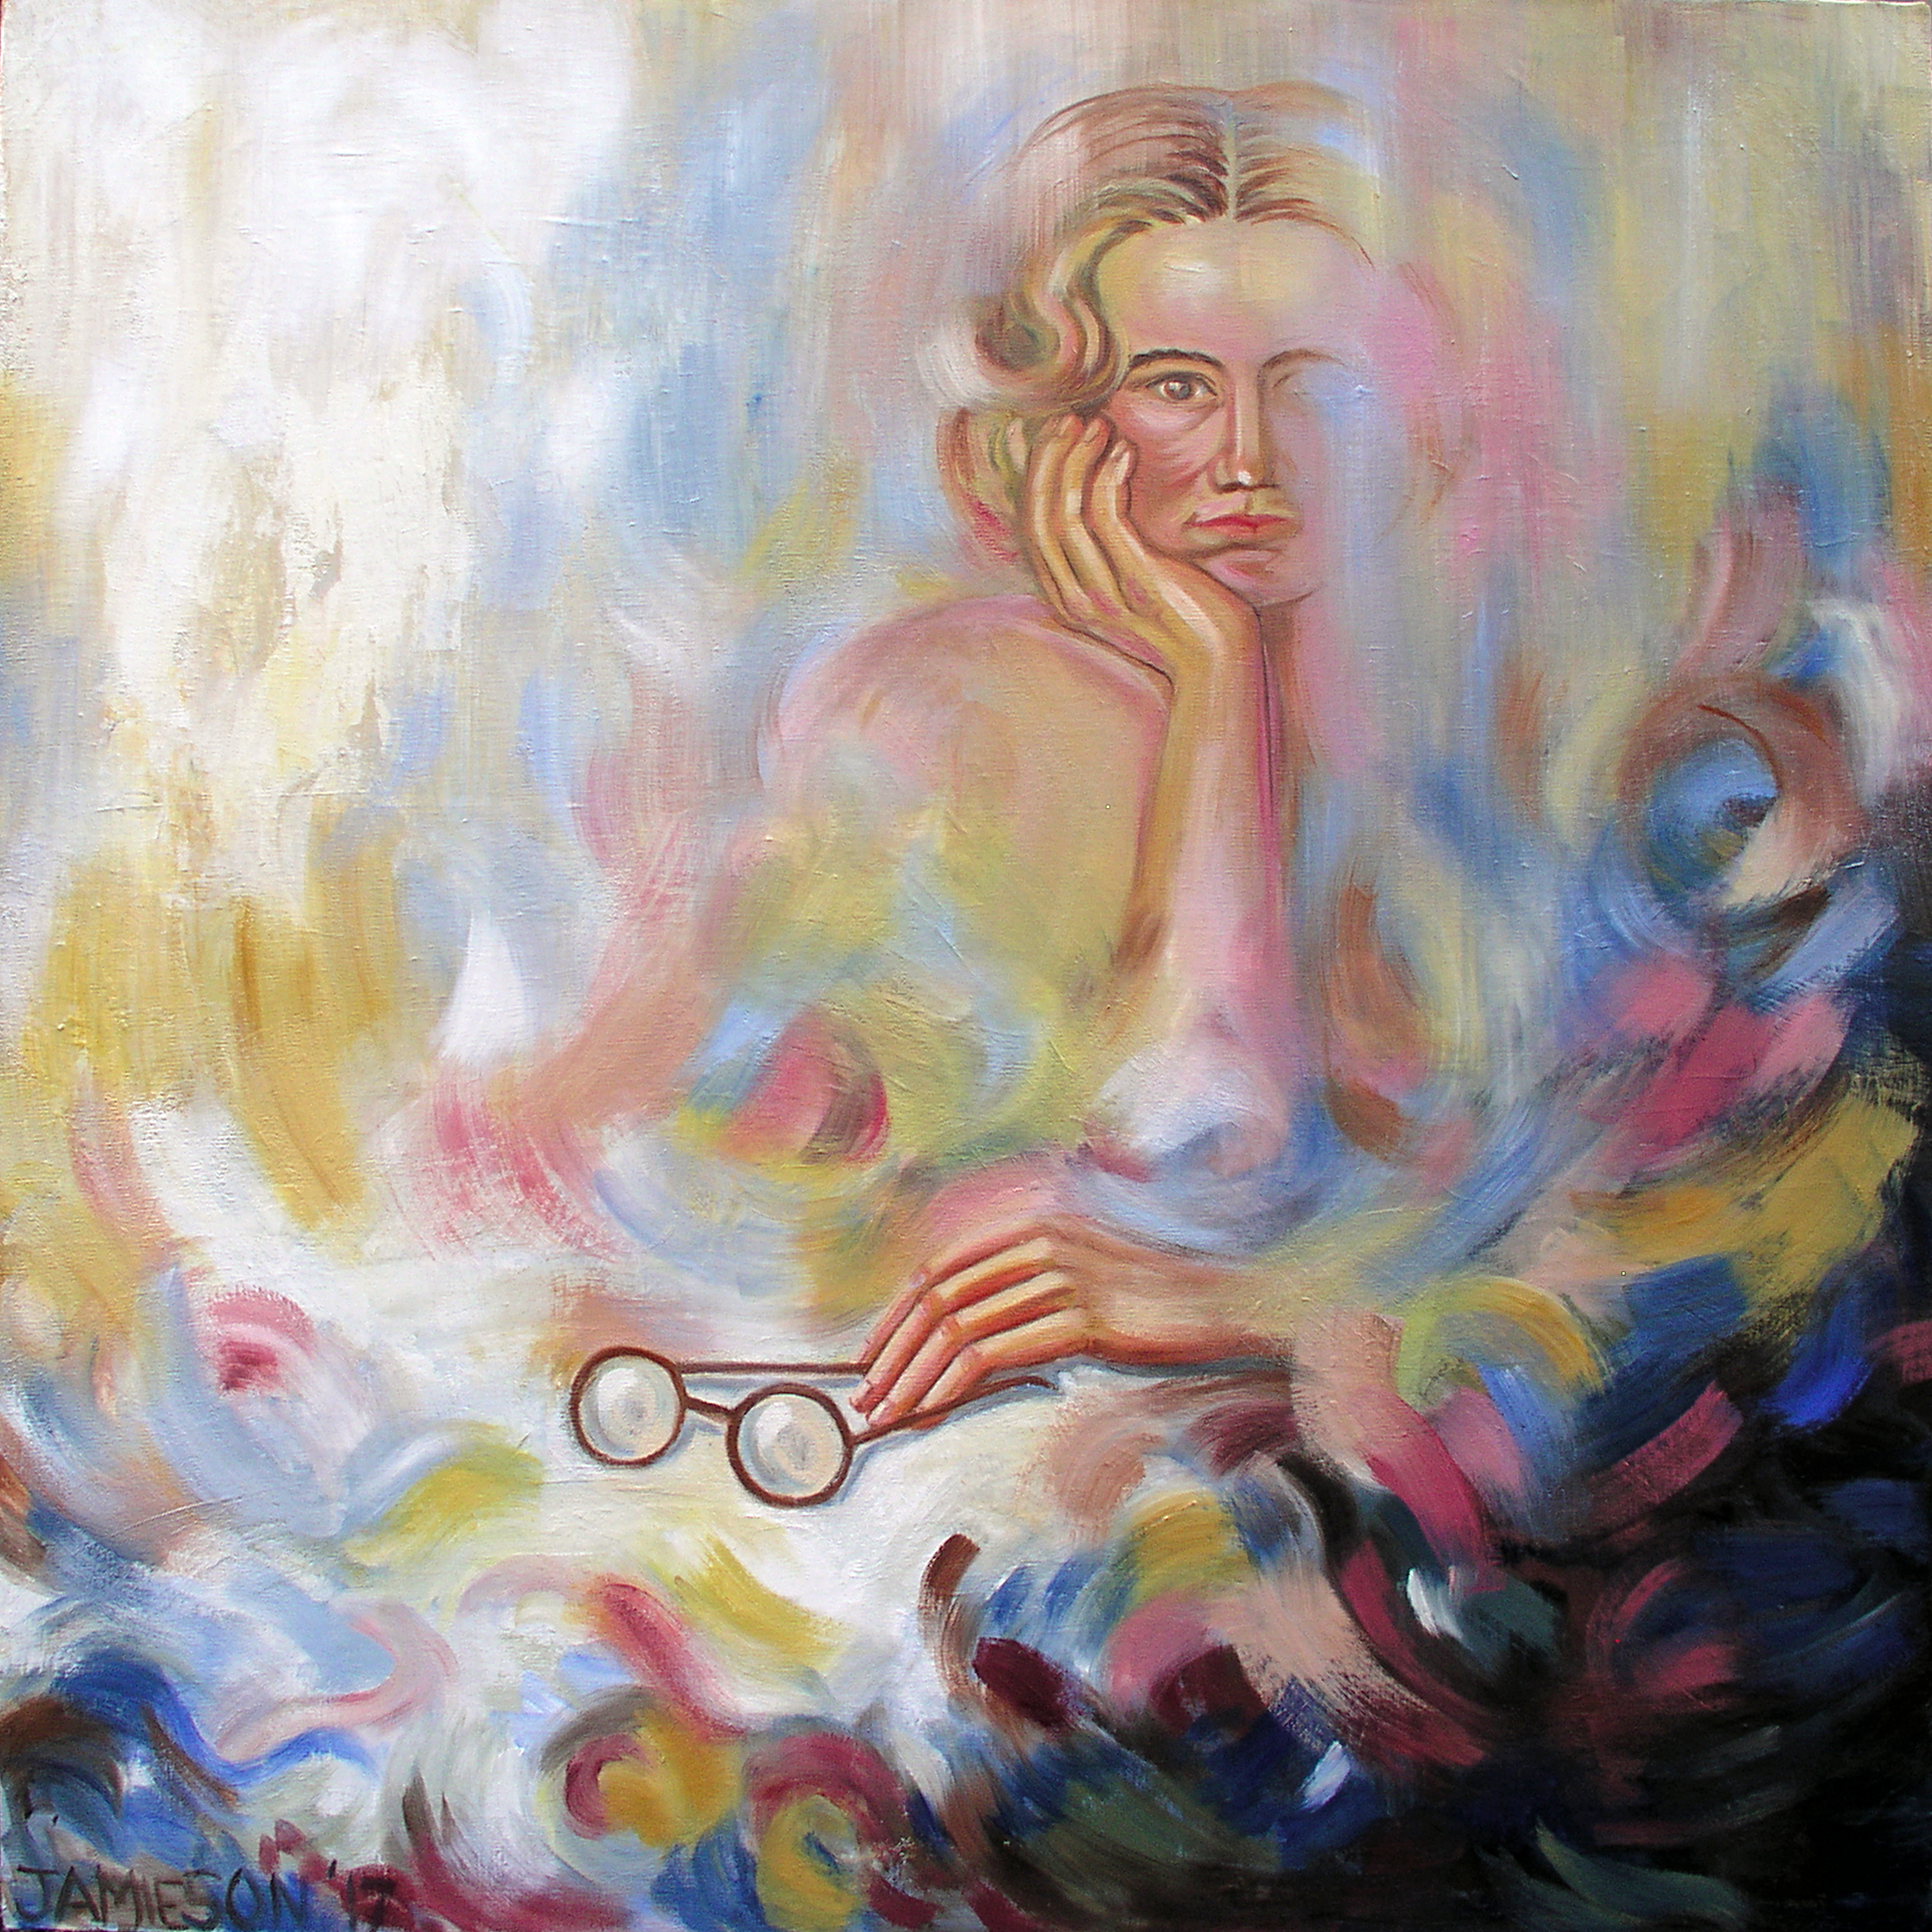 "Young woman with Glasses, April 2017, Marion-Lea Jamieson, oil on canvas, 36"" x 36"""